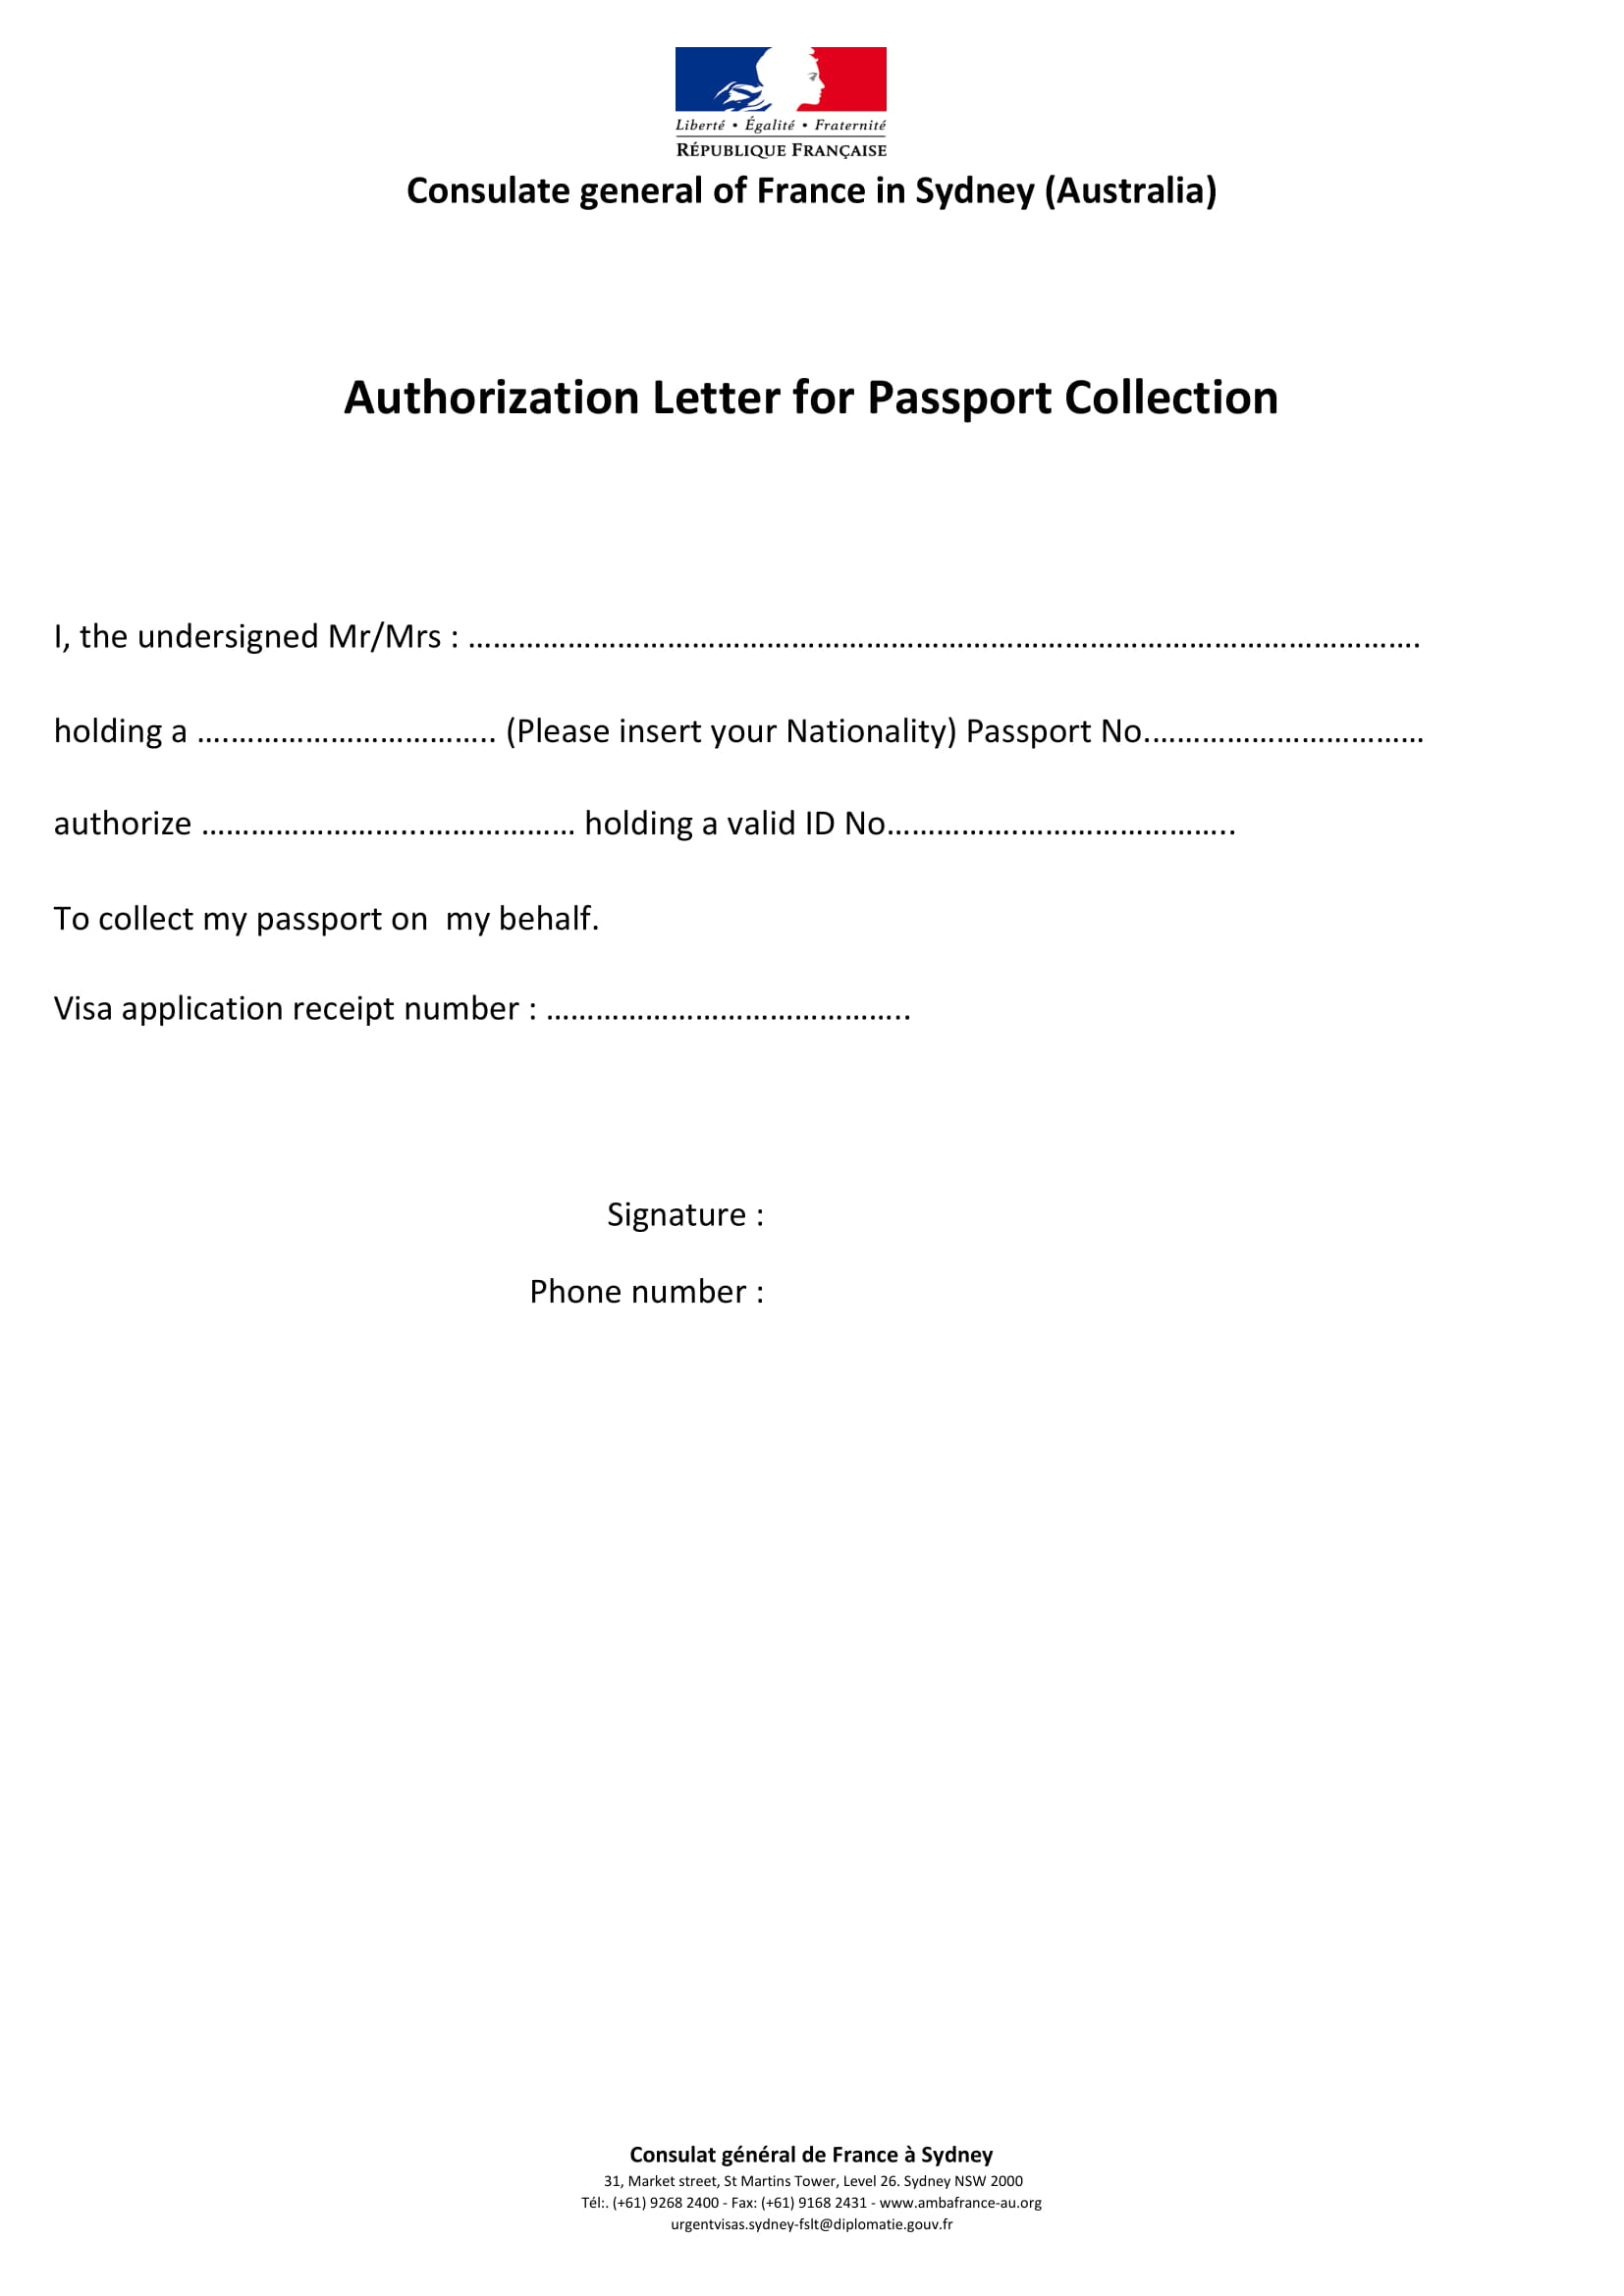 9+ Authorization Letter to Claim Examples | Examples